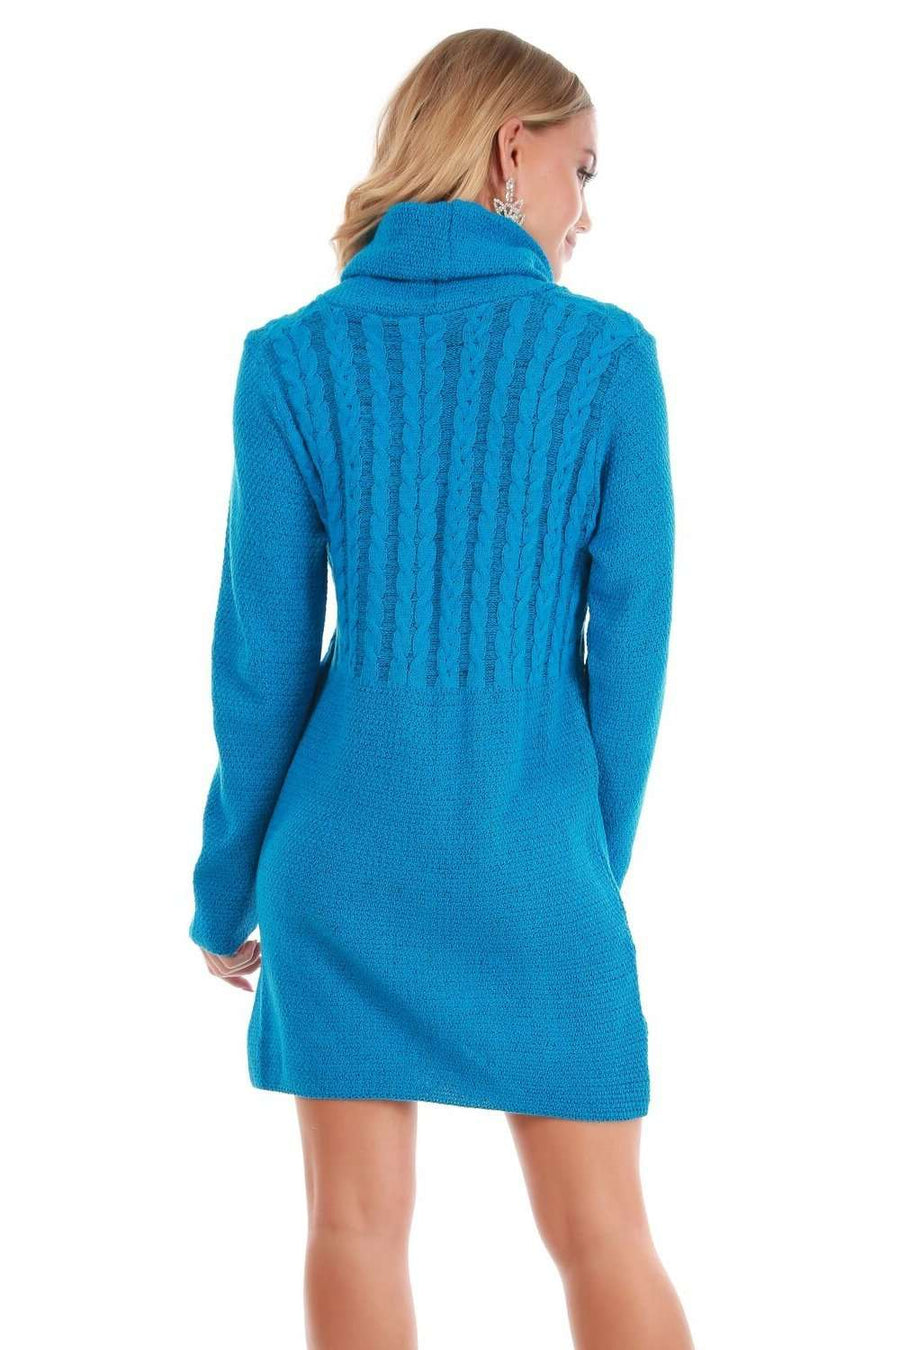 Roll Neck Blue Knitted Jumper Dress - bejealous-com